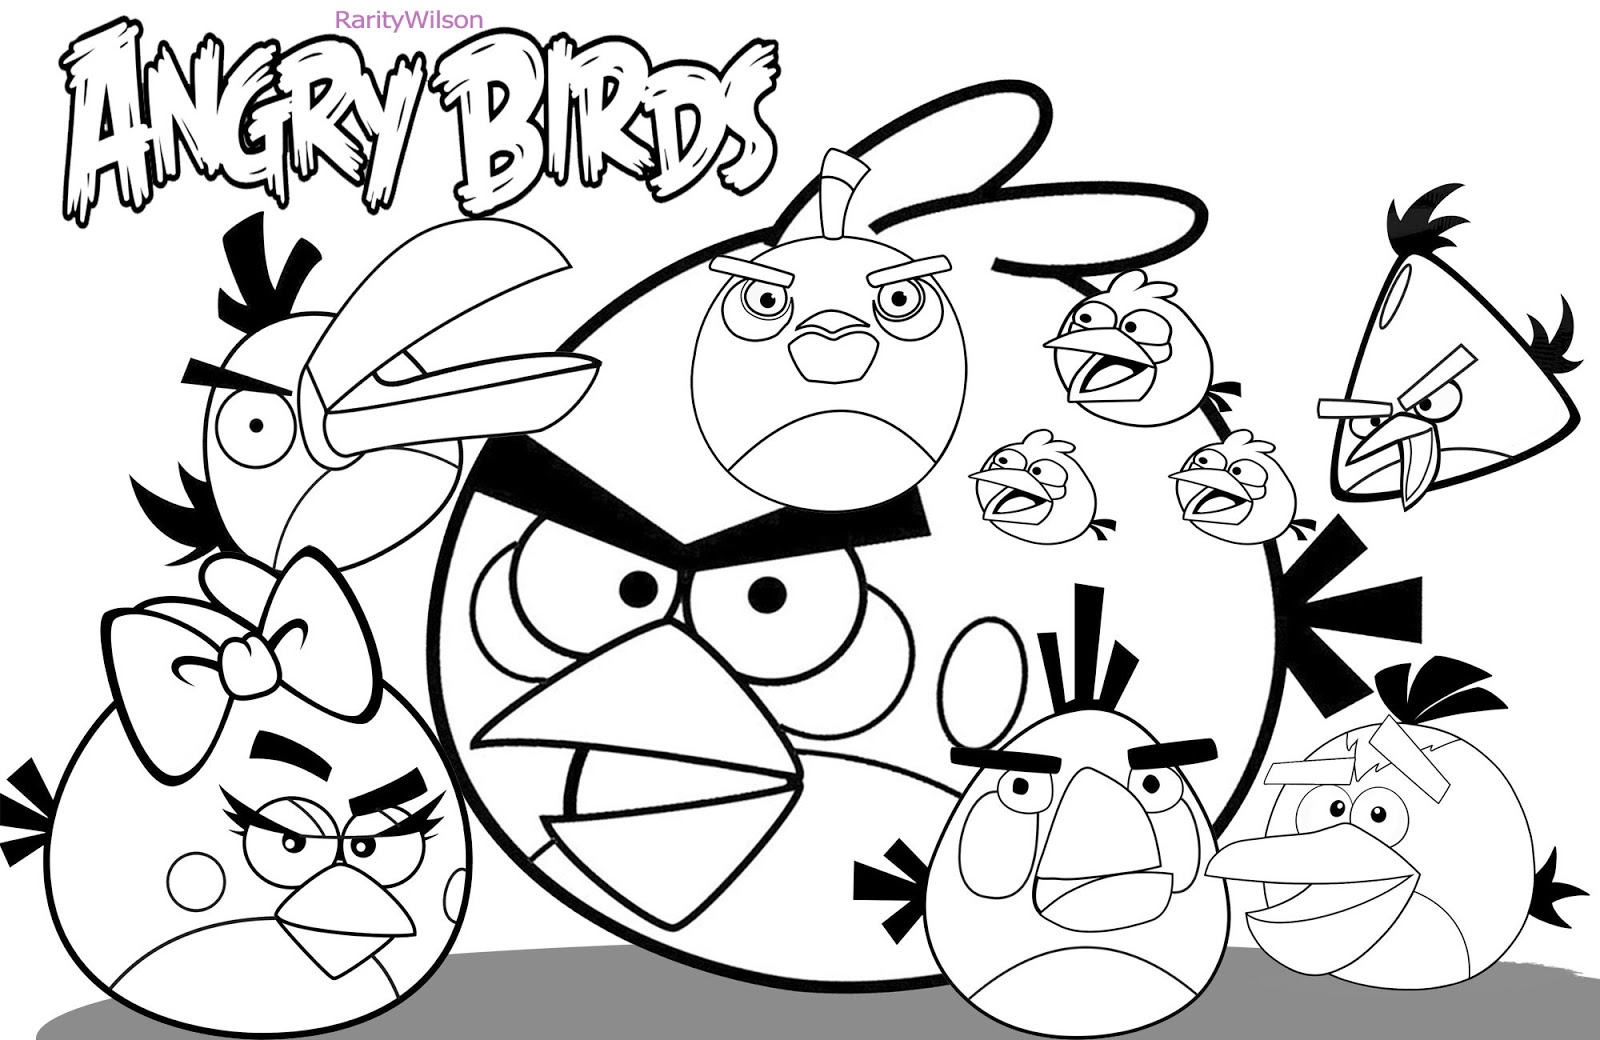 personalized party invites news angry birds free printable